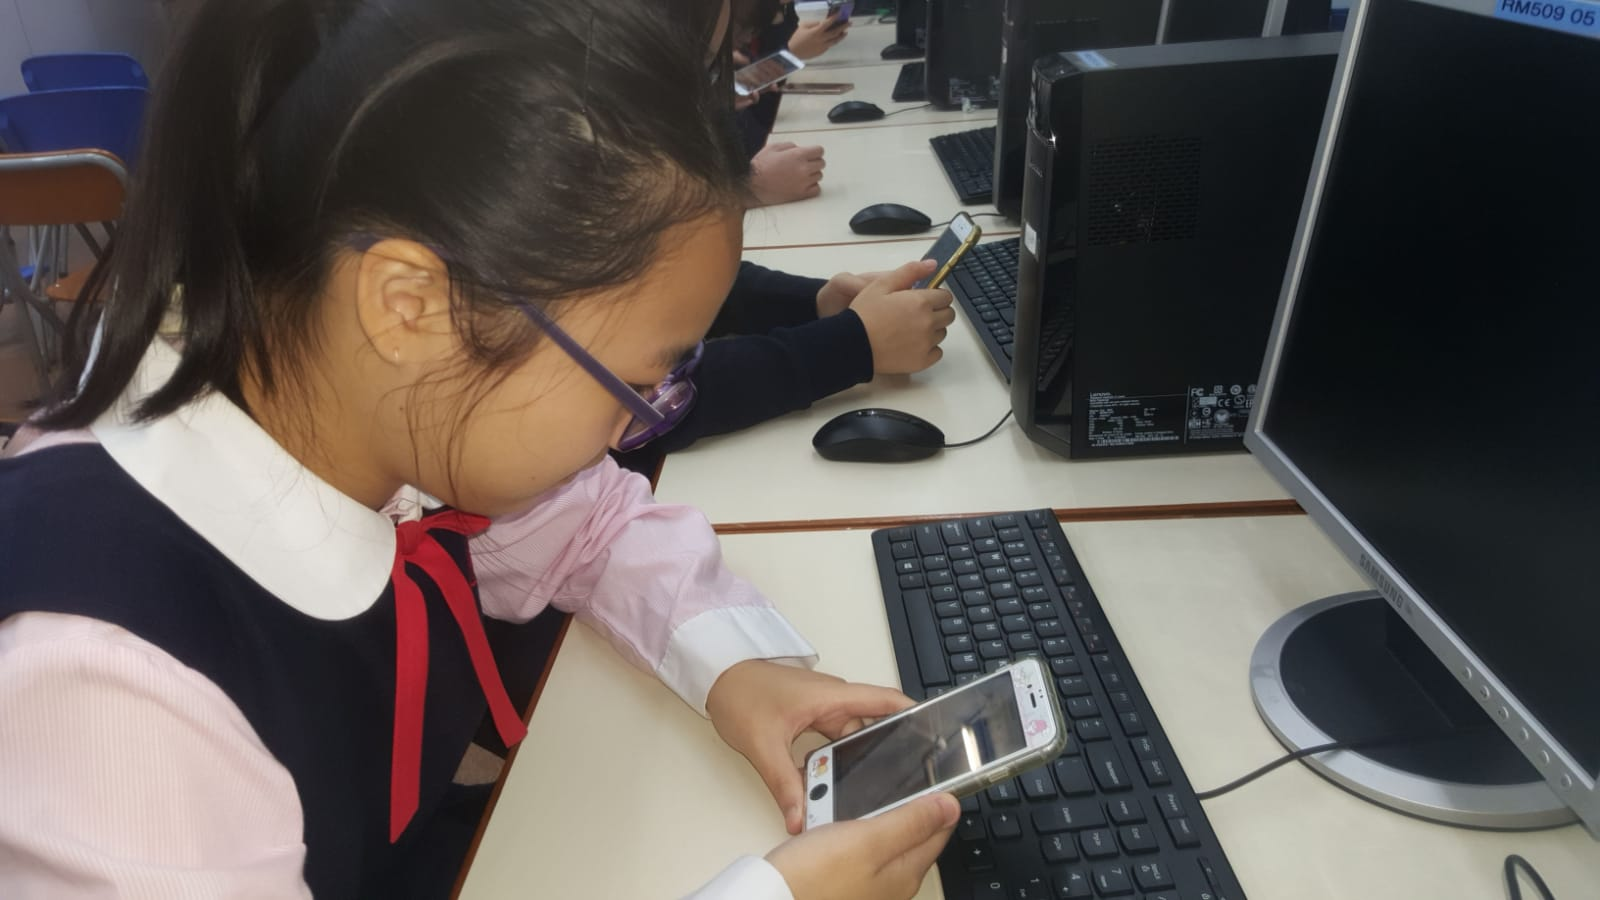 Students were downloading the apps using their mobile phone.